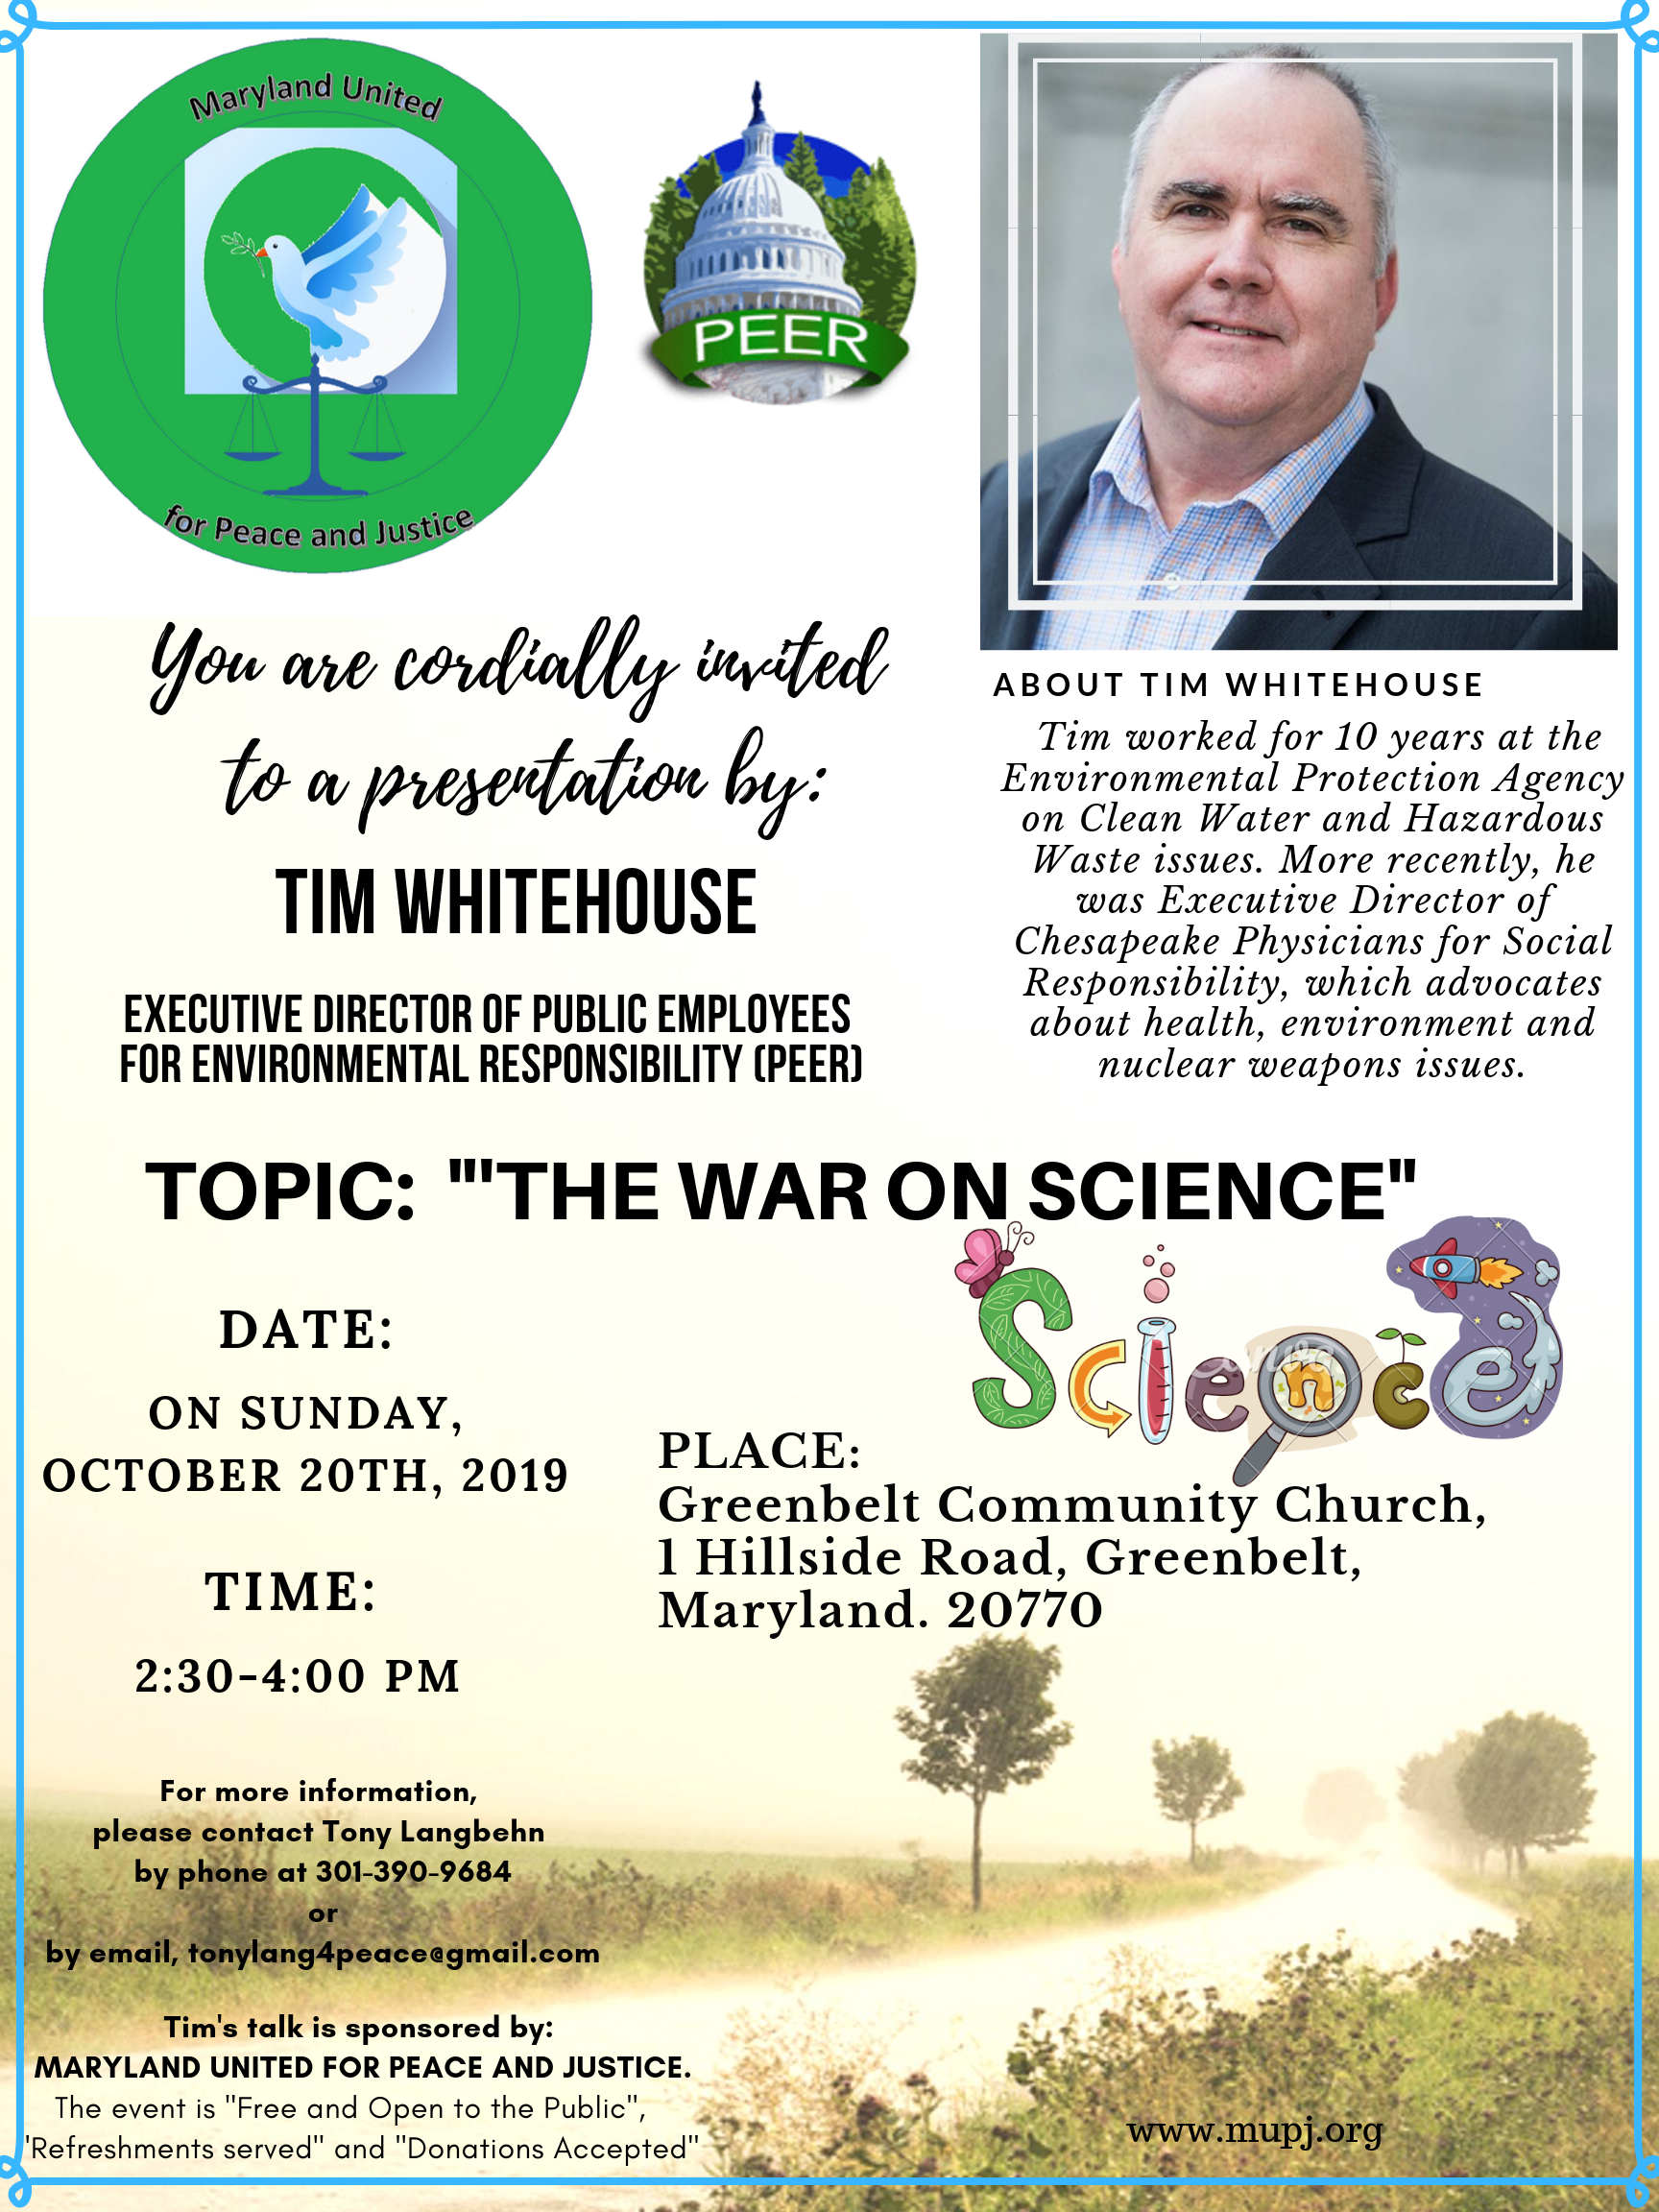 TIM WHITEHOUSE WILL SPEAK ABOUT 'THE WAR ON SCIENCE' ON SUNDAY, OCTOBER 20TH, 2019 at the Greenbelt Community Church.